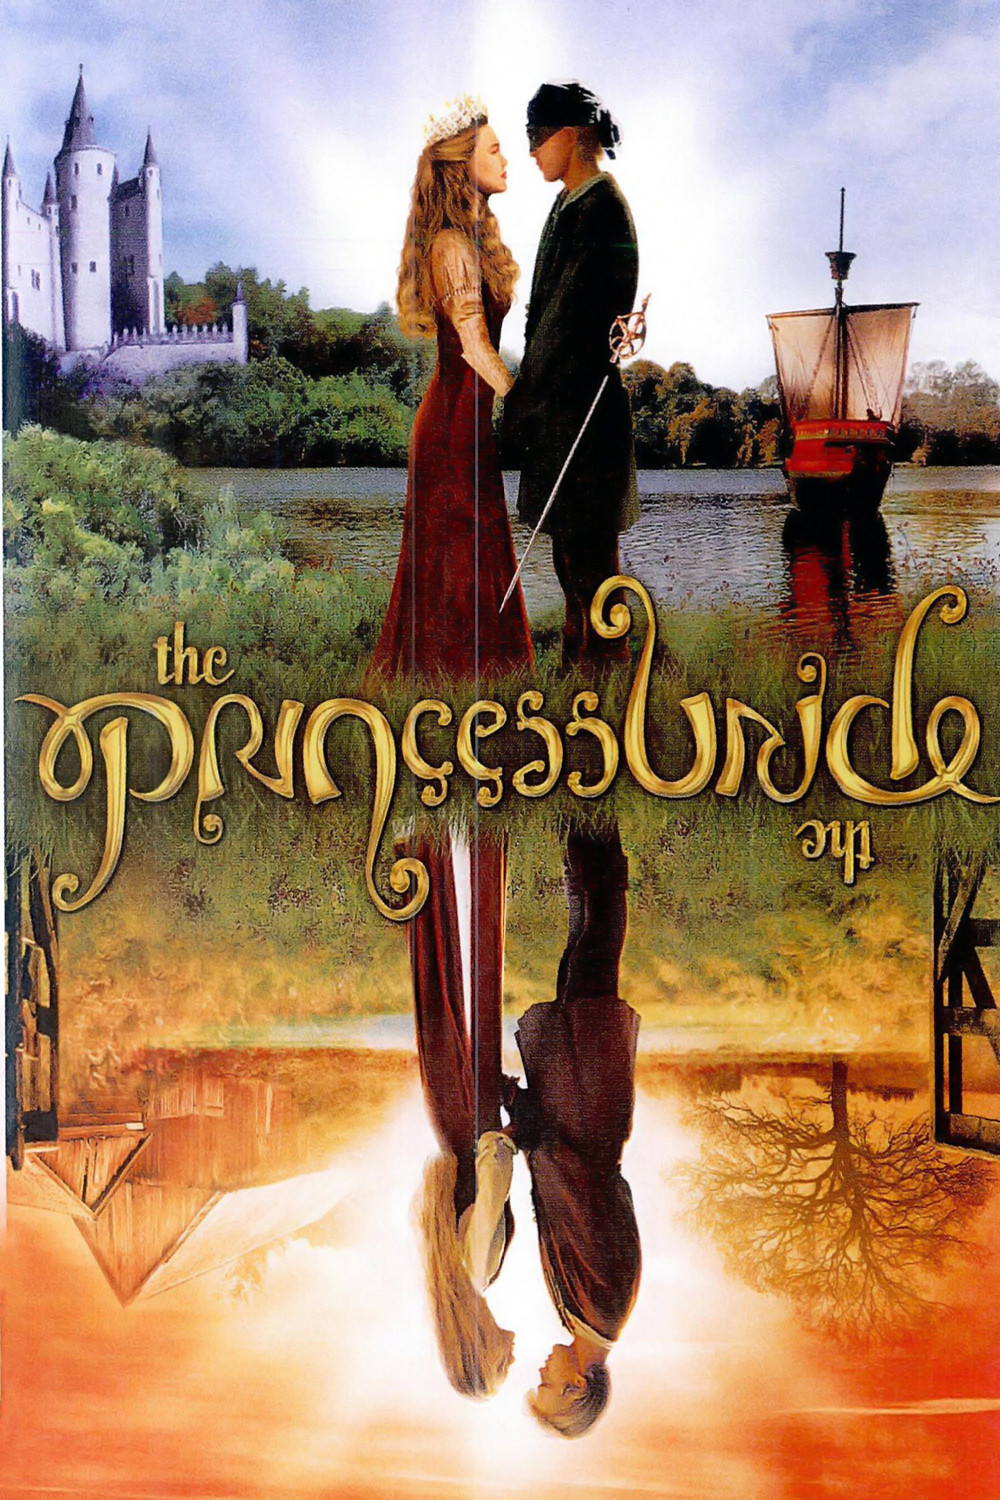 the Princess Bride : Poster. Lovely typography, can be read right side up and upside down! Love seeing the type match the whimsy of the story.